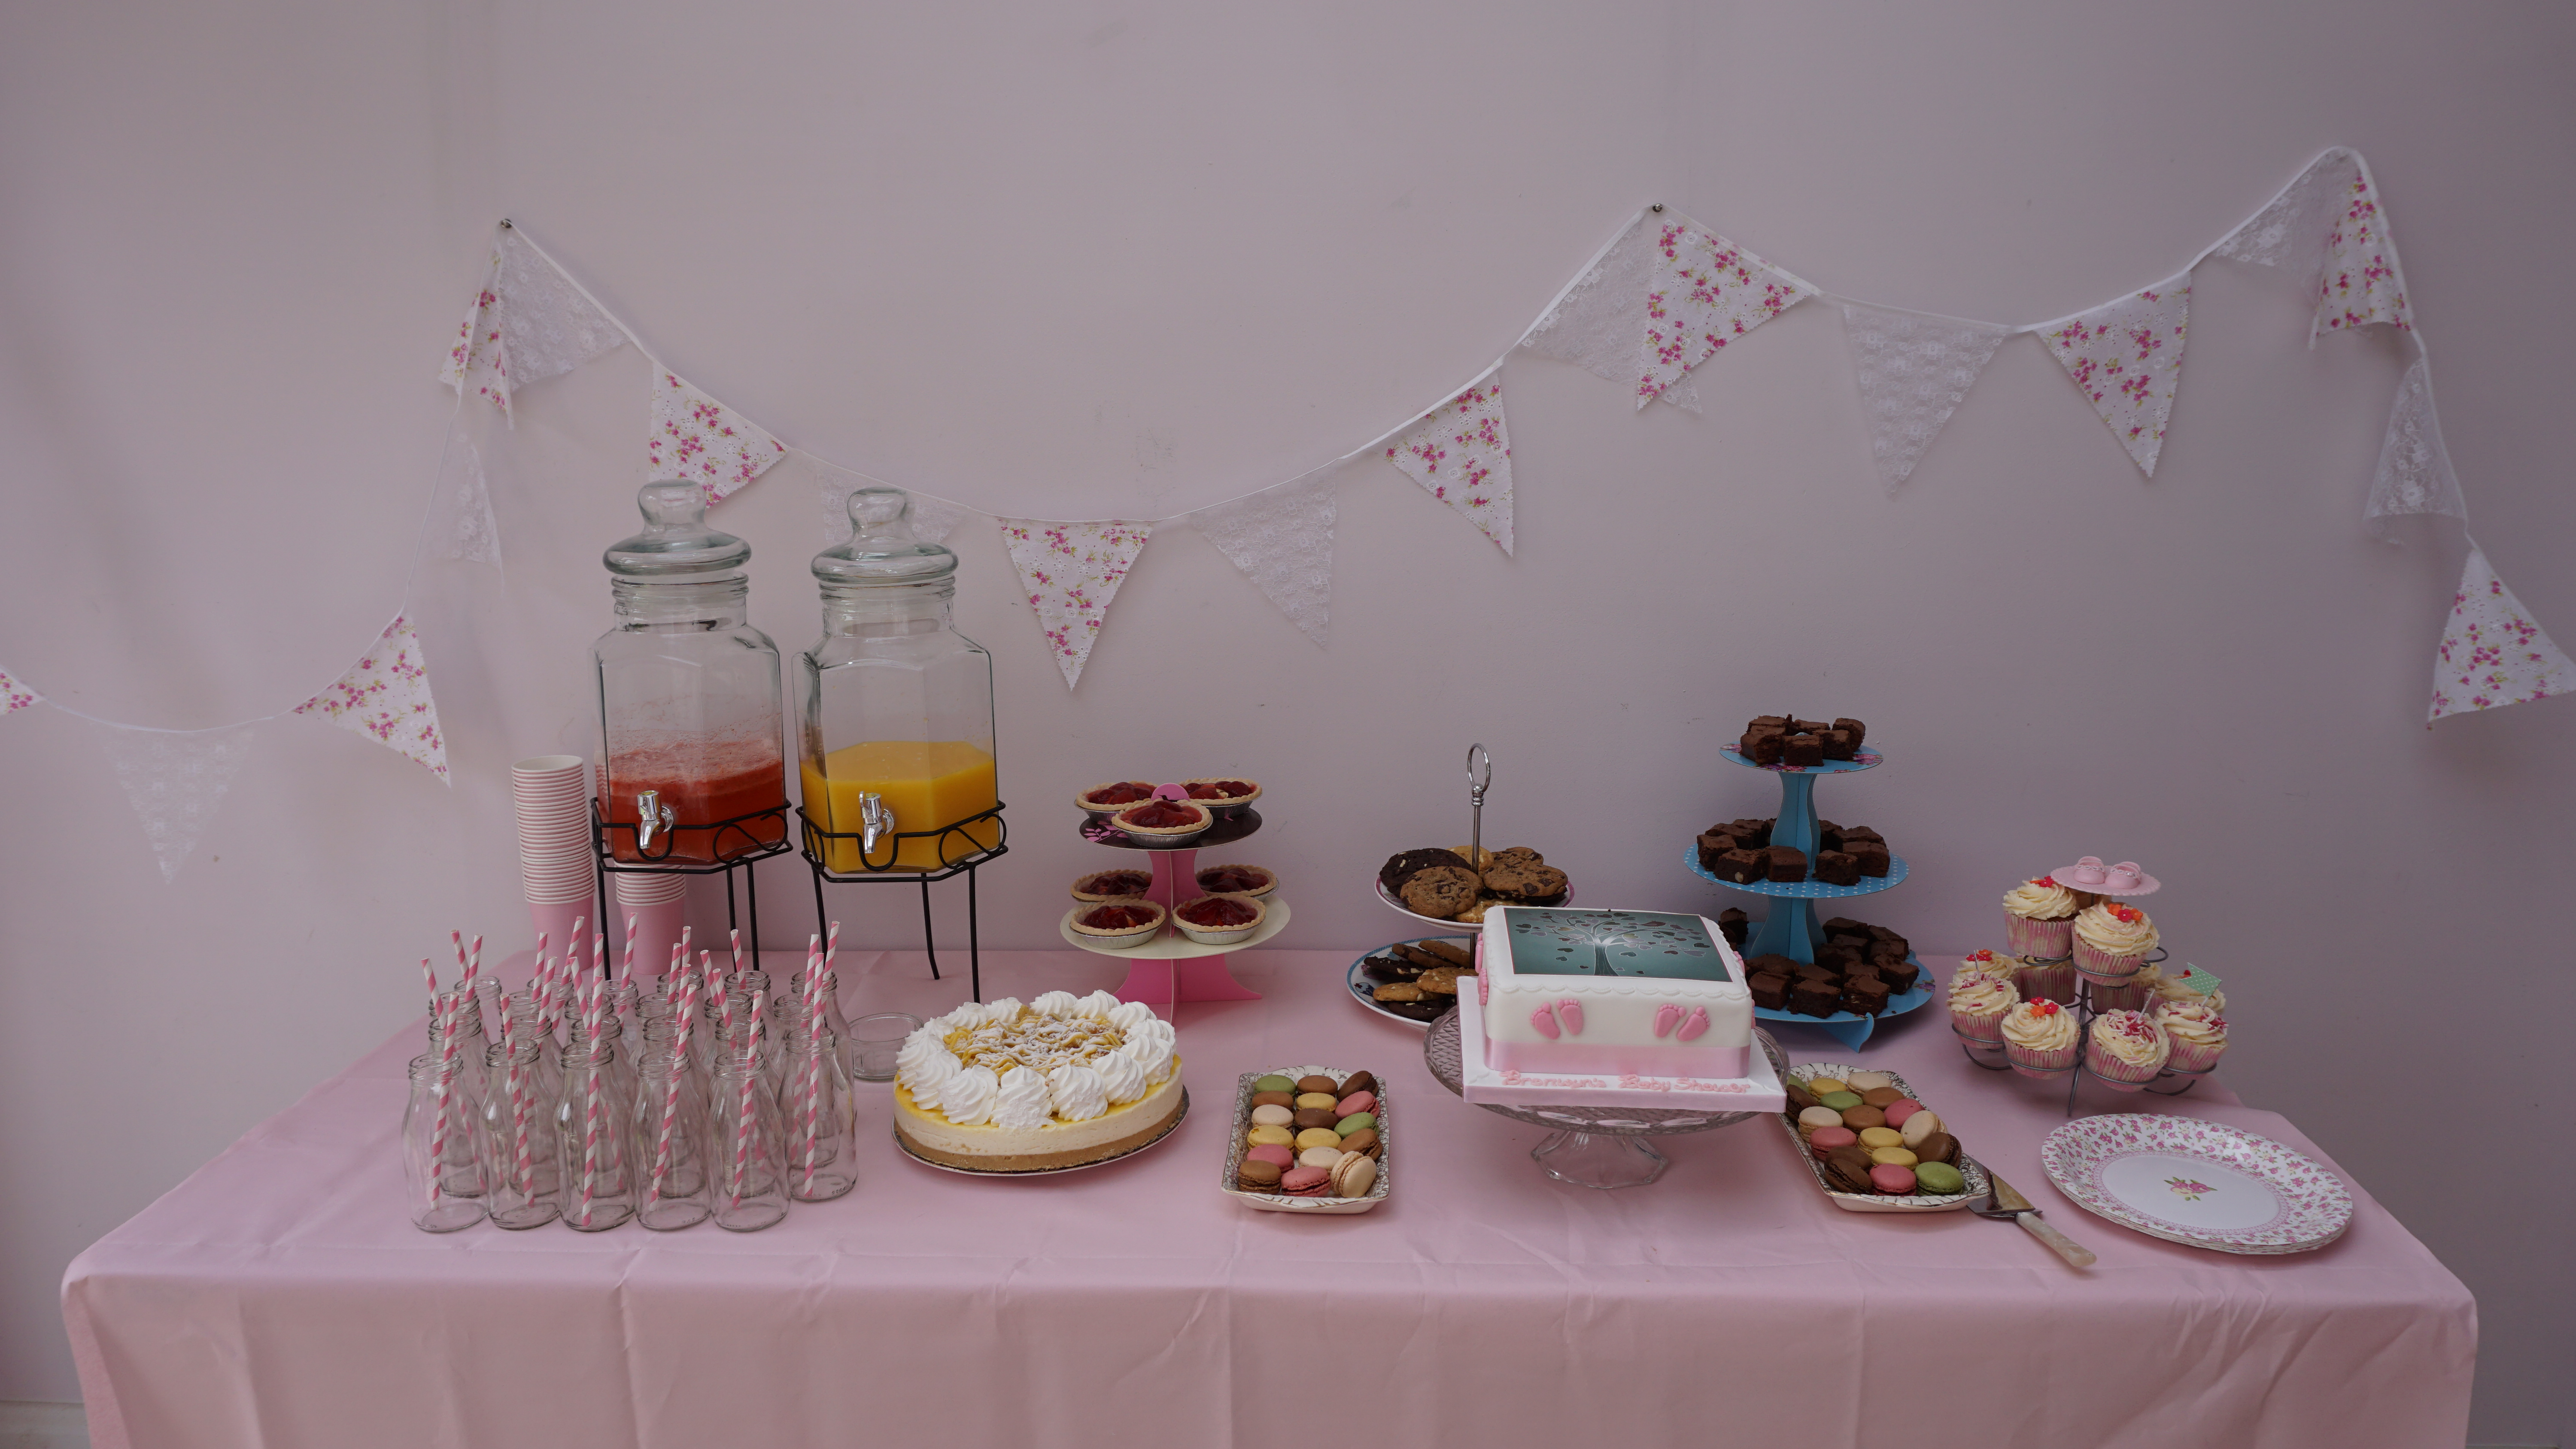 drinks dispenser and milk bottles available to hire great for weddings baby shower or event